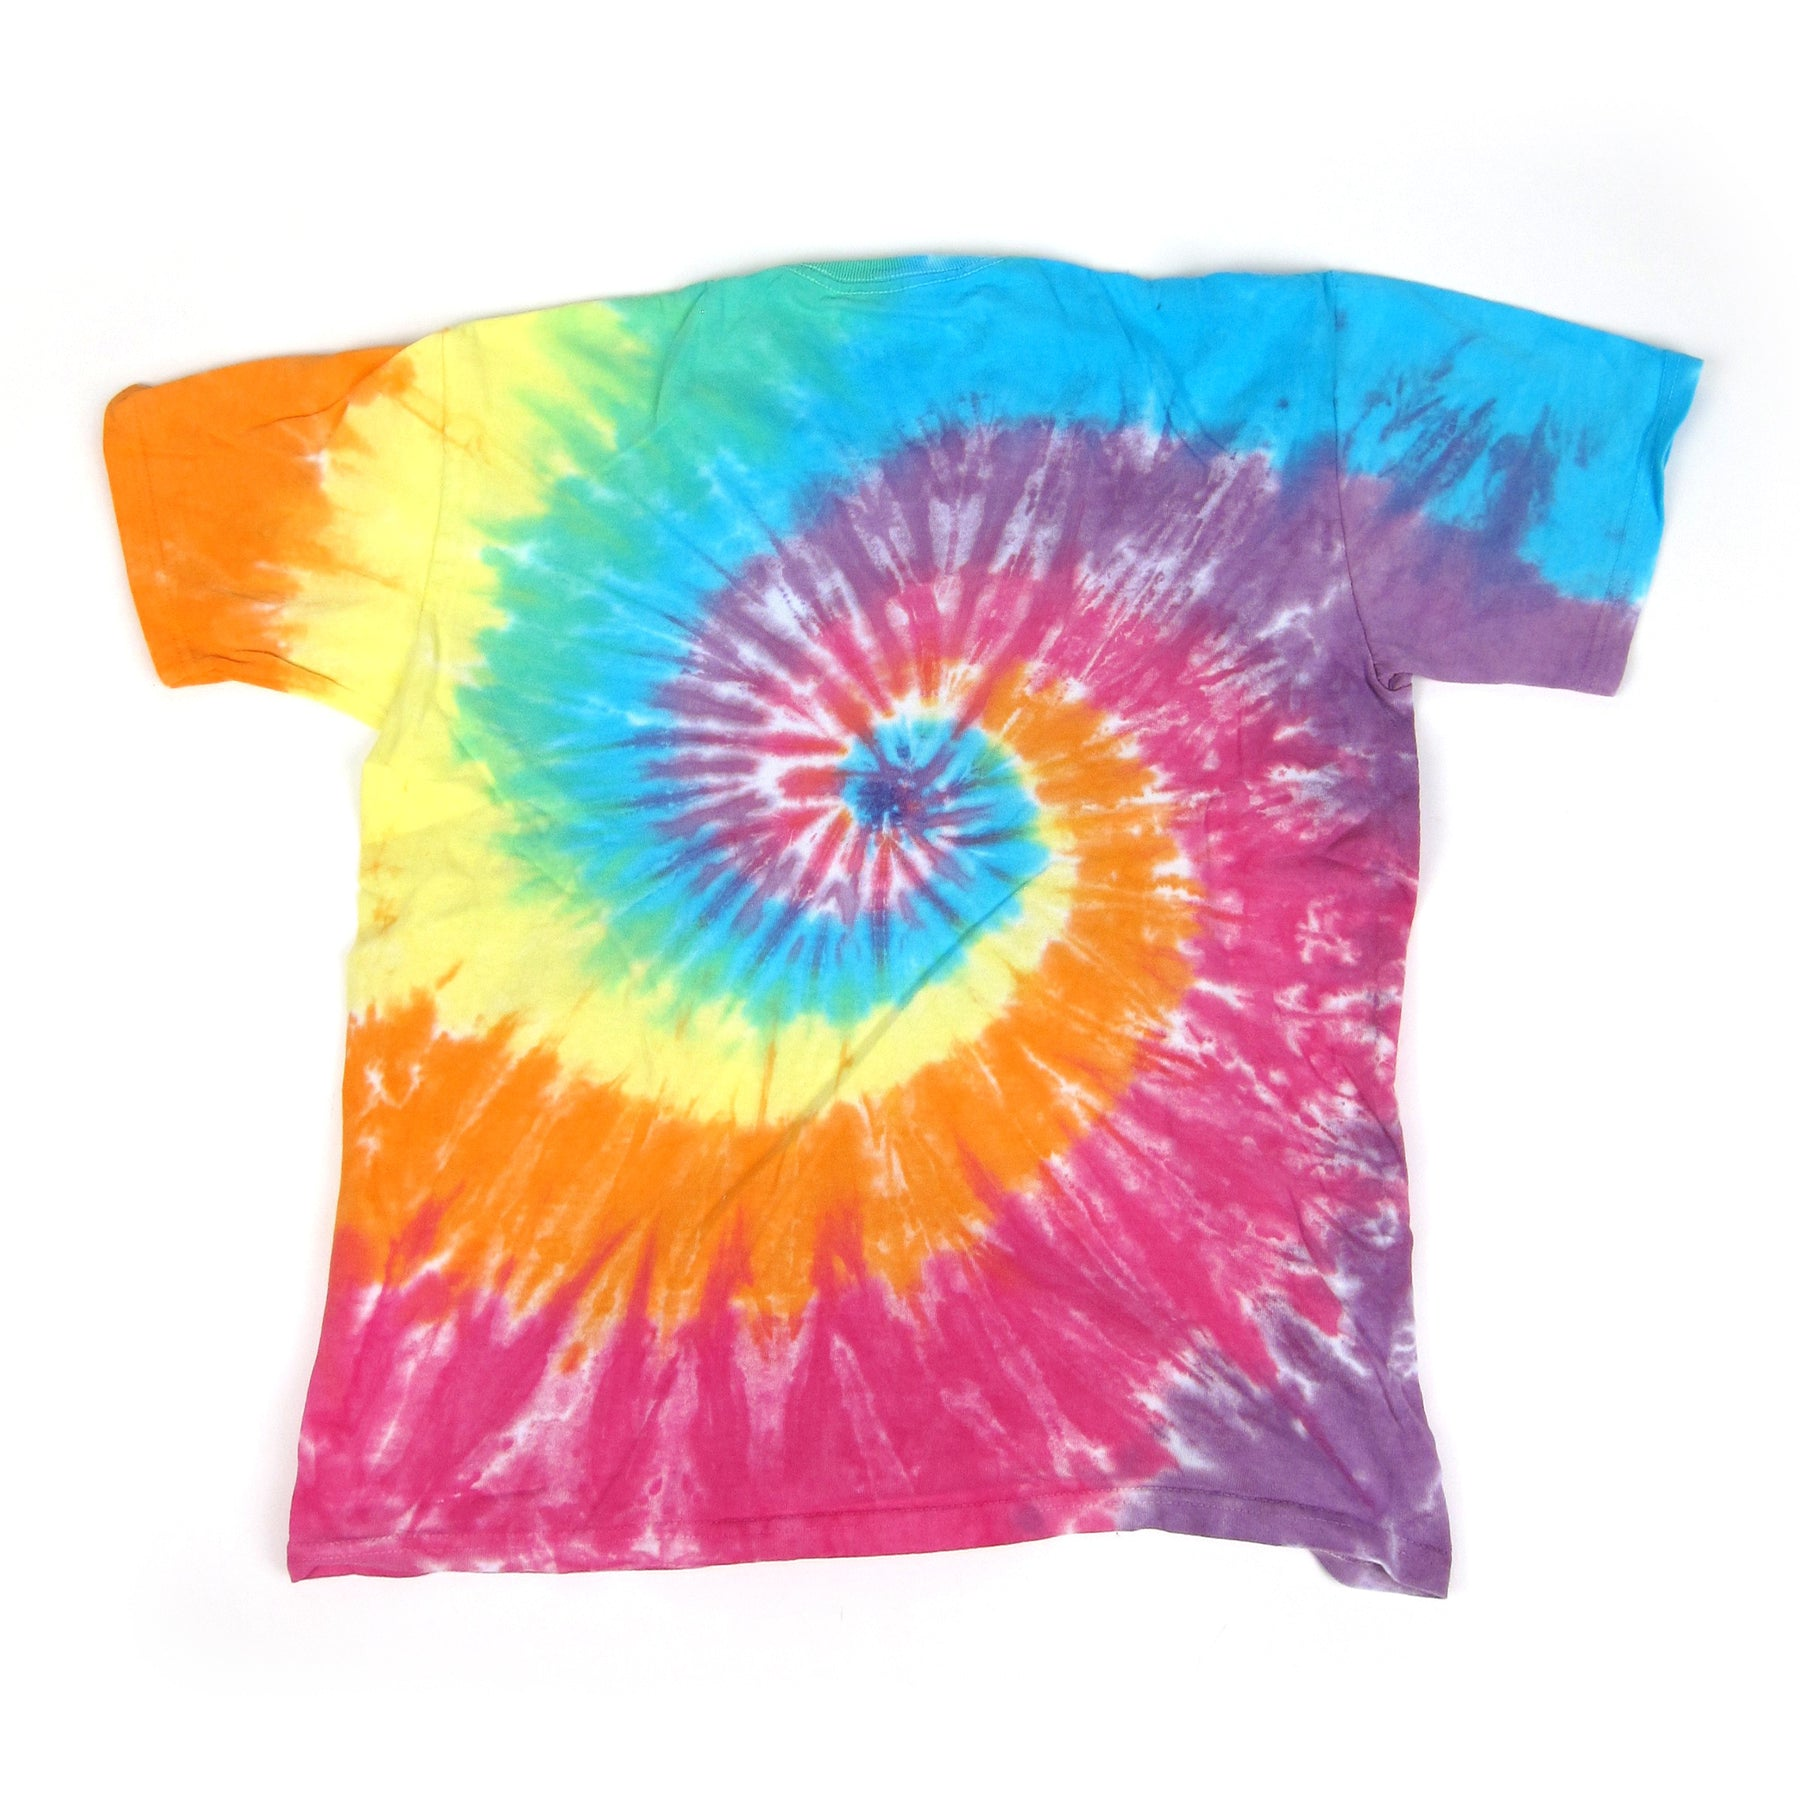 Grateful Dead Spiral Bears Shirt Tie Dye Turntablelab Com